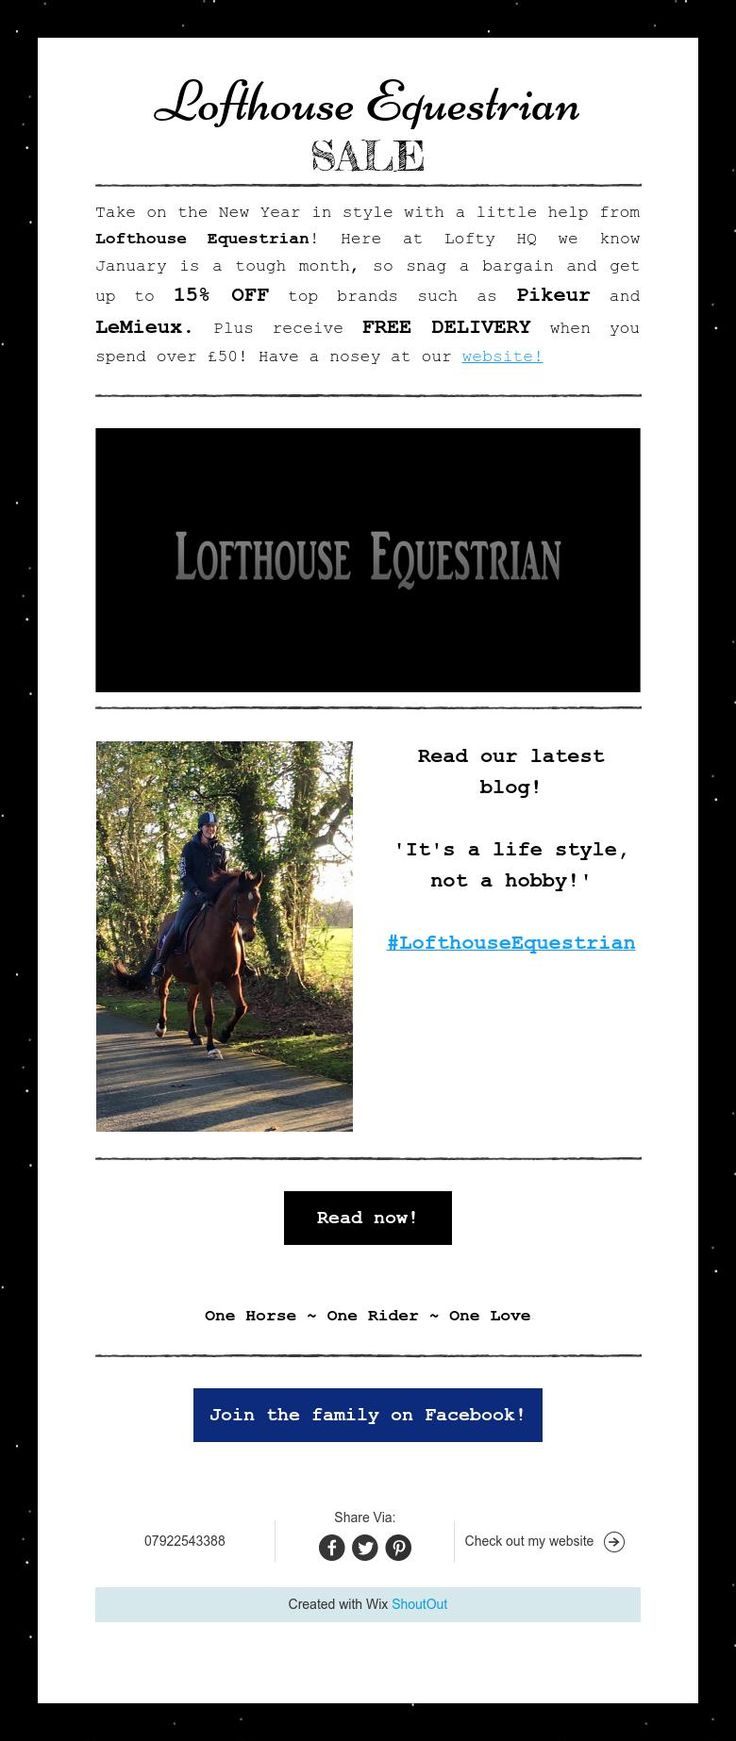 Lofthouse Equestrian Newsletter December 2015! Sale items and our recent blog!